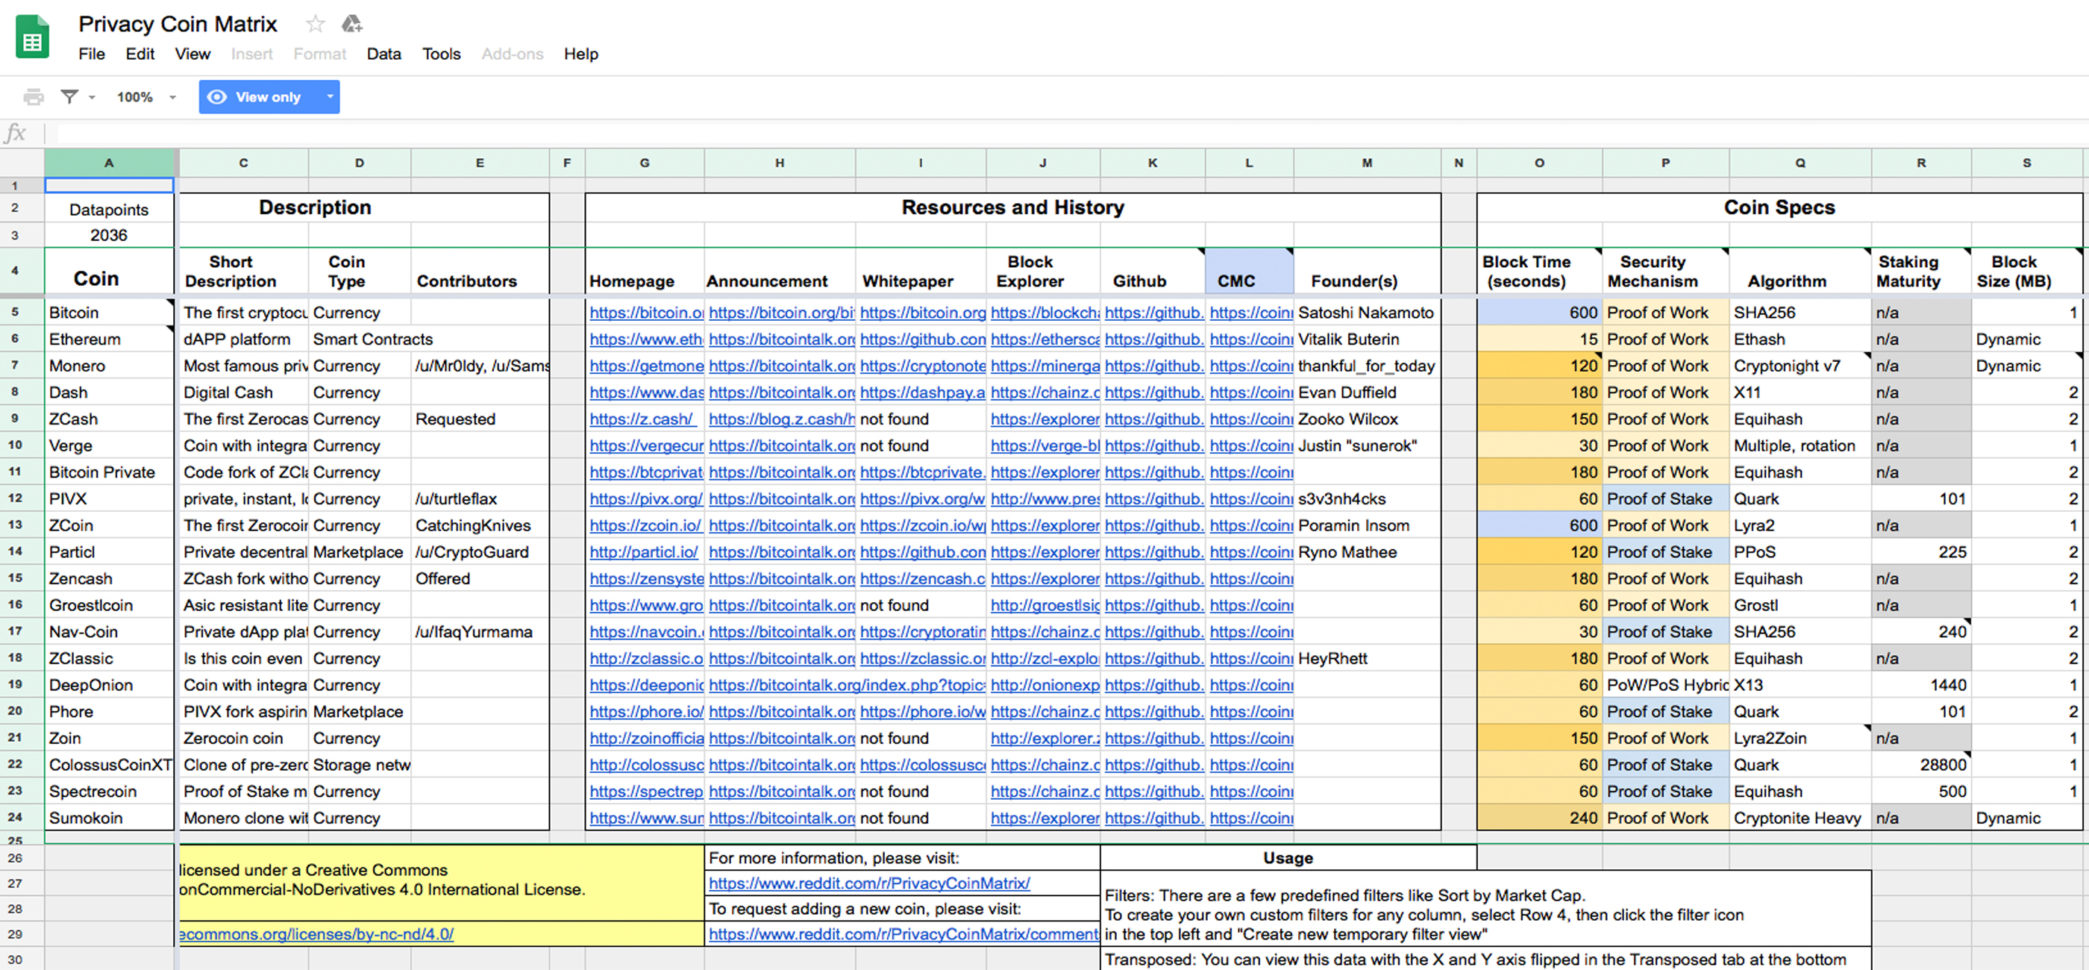 Matrix Spreadsheet In The Privacy Coin Matrix: A Comprehensive Spreadsheet Of Anonymous